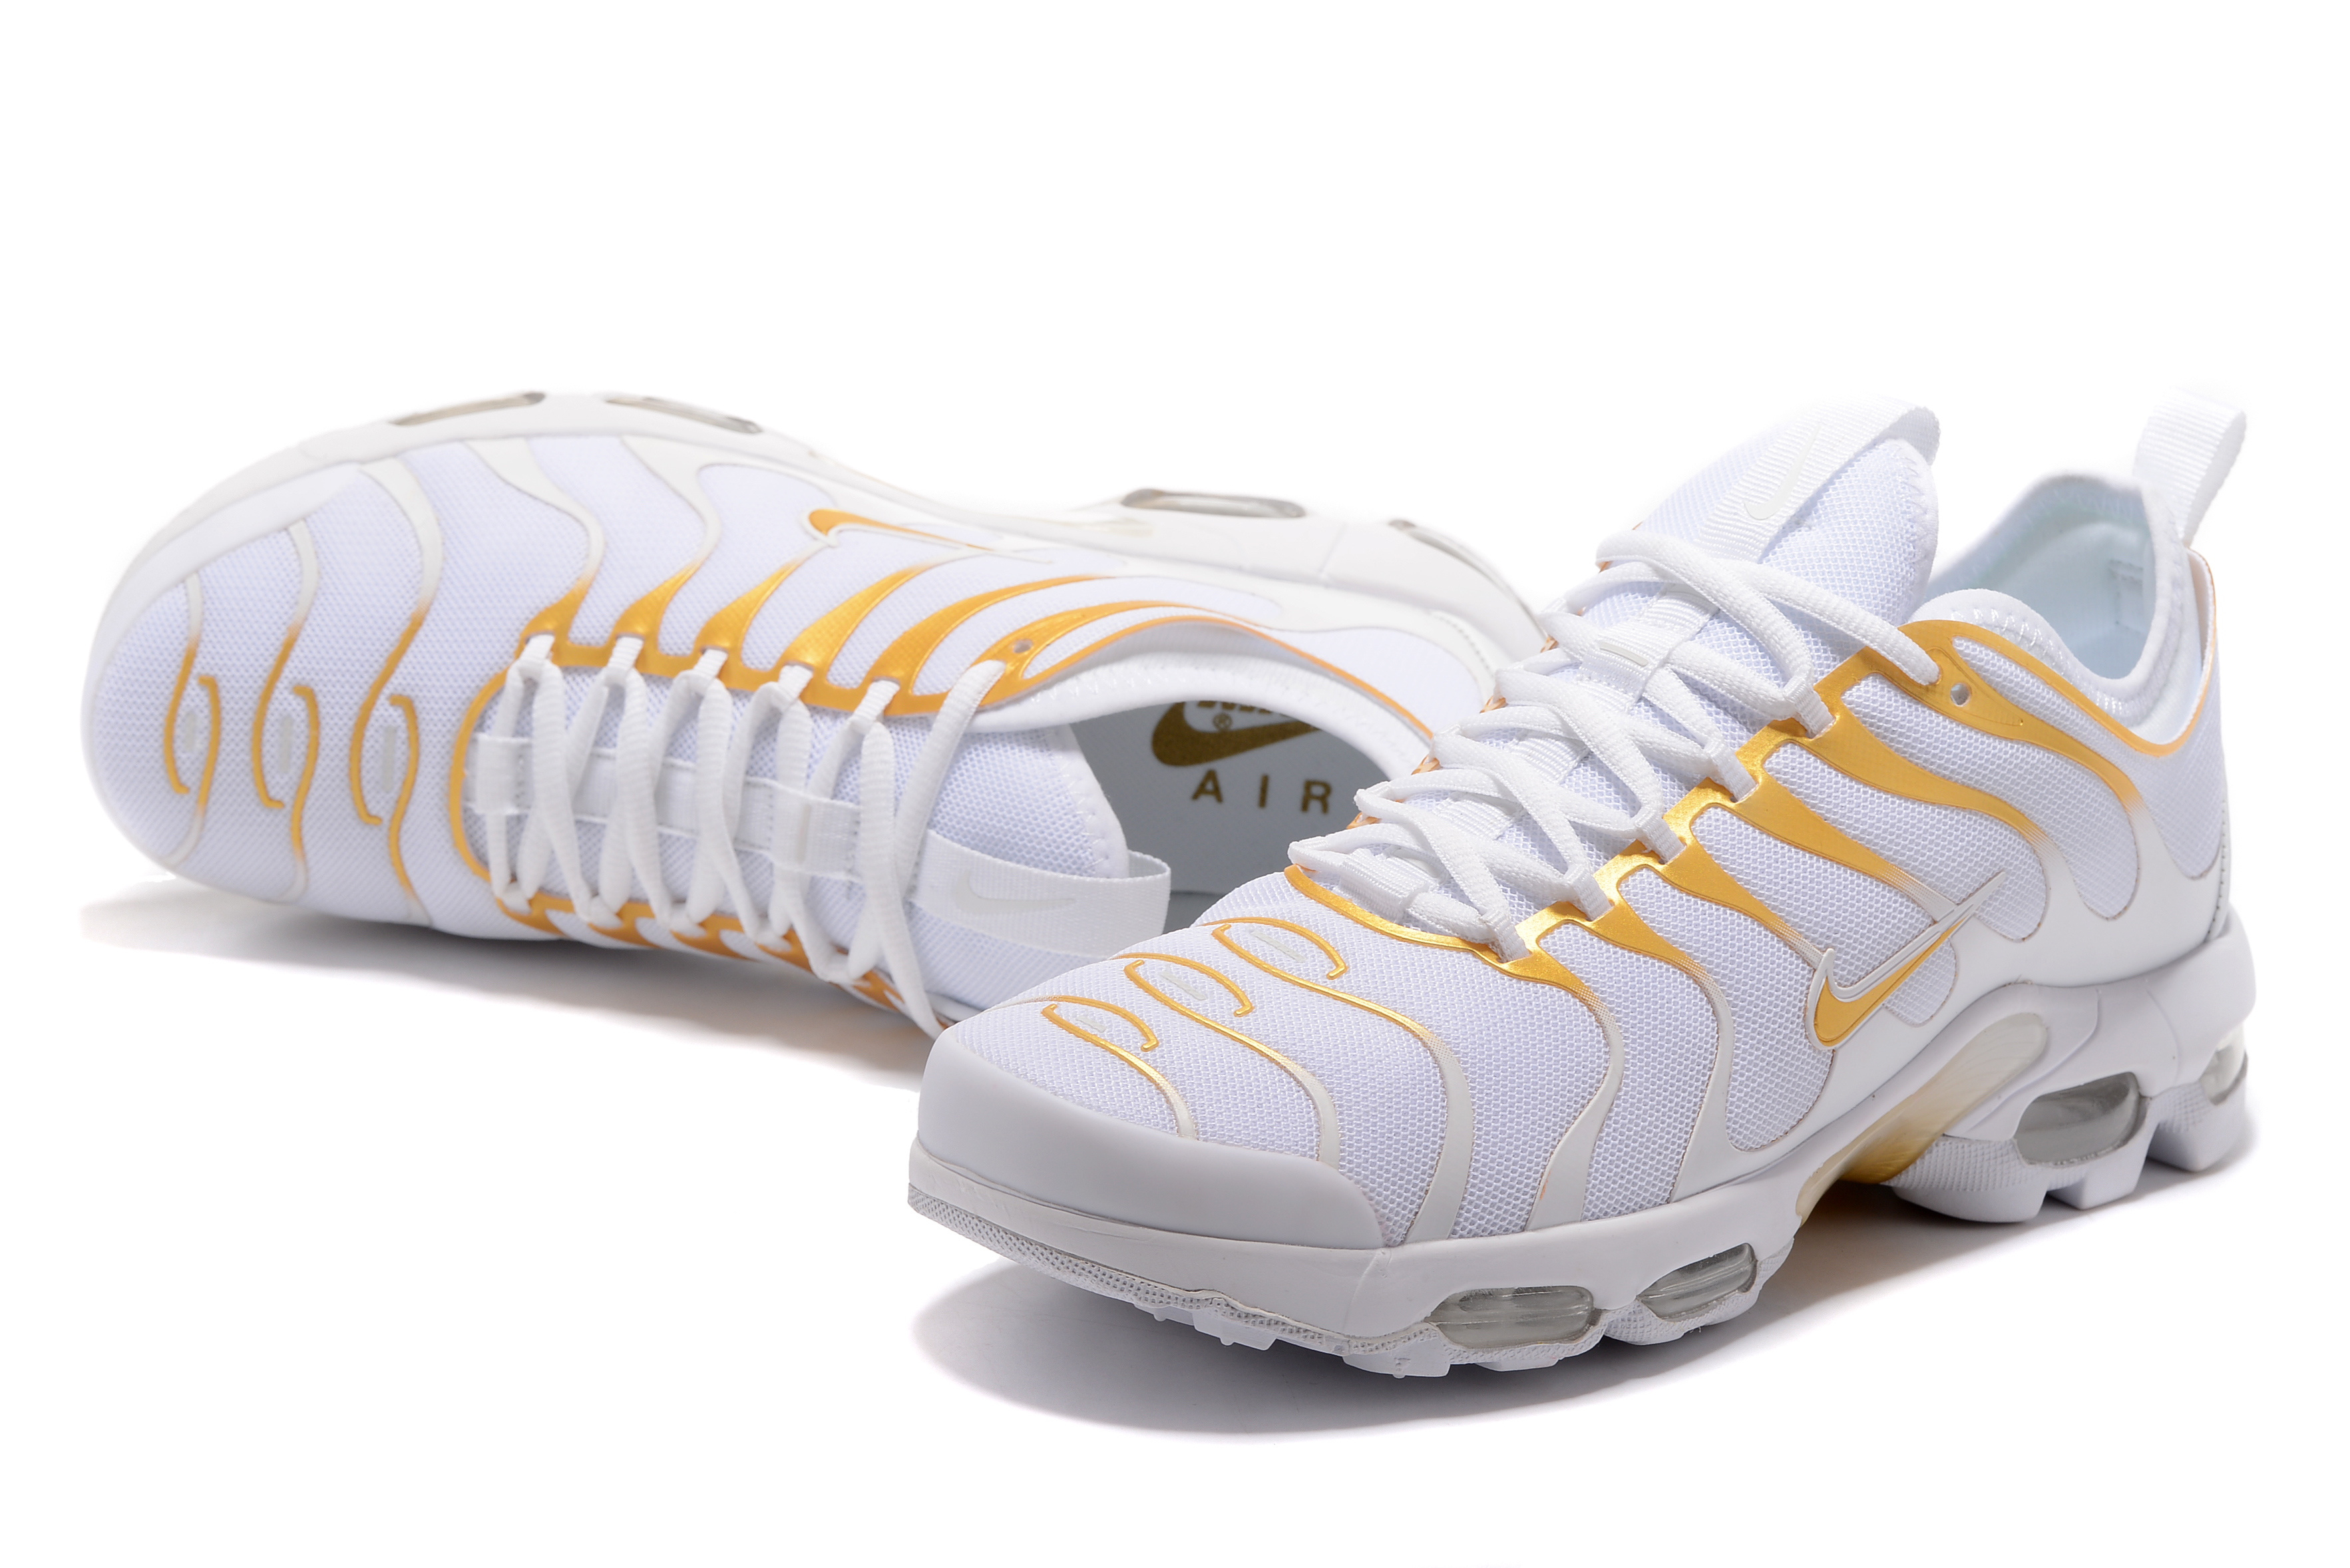 Nike Air Max Plus TN White Yellow Shoes